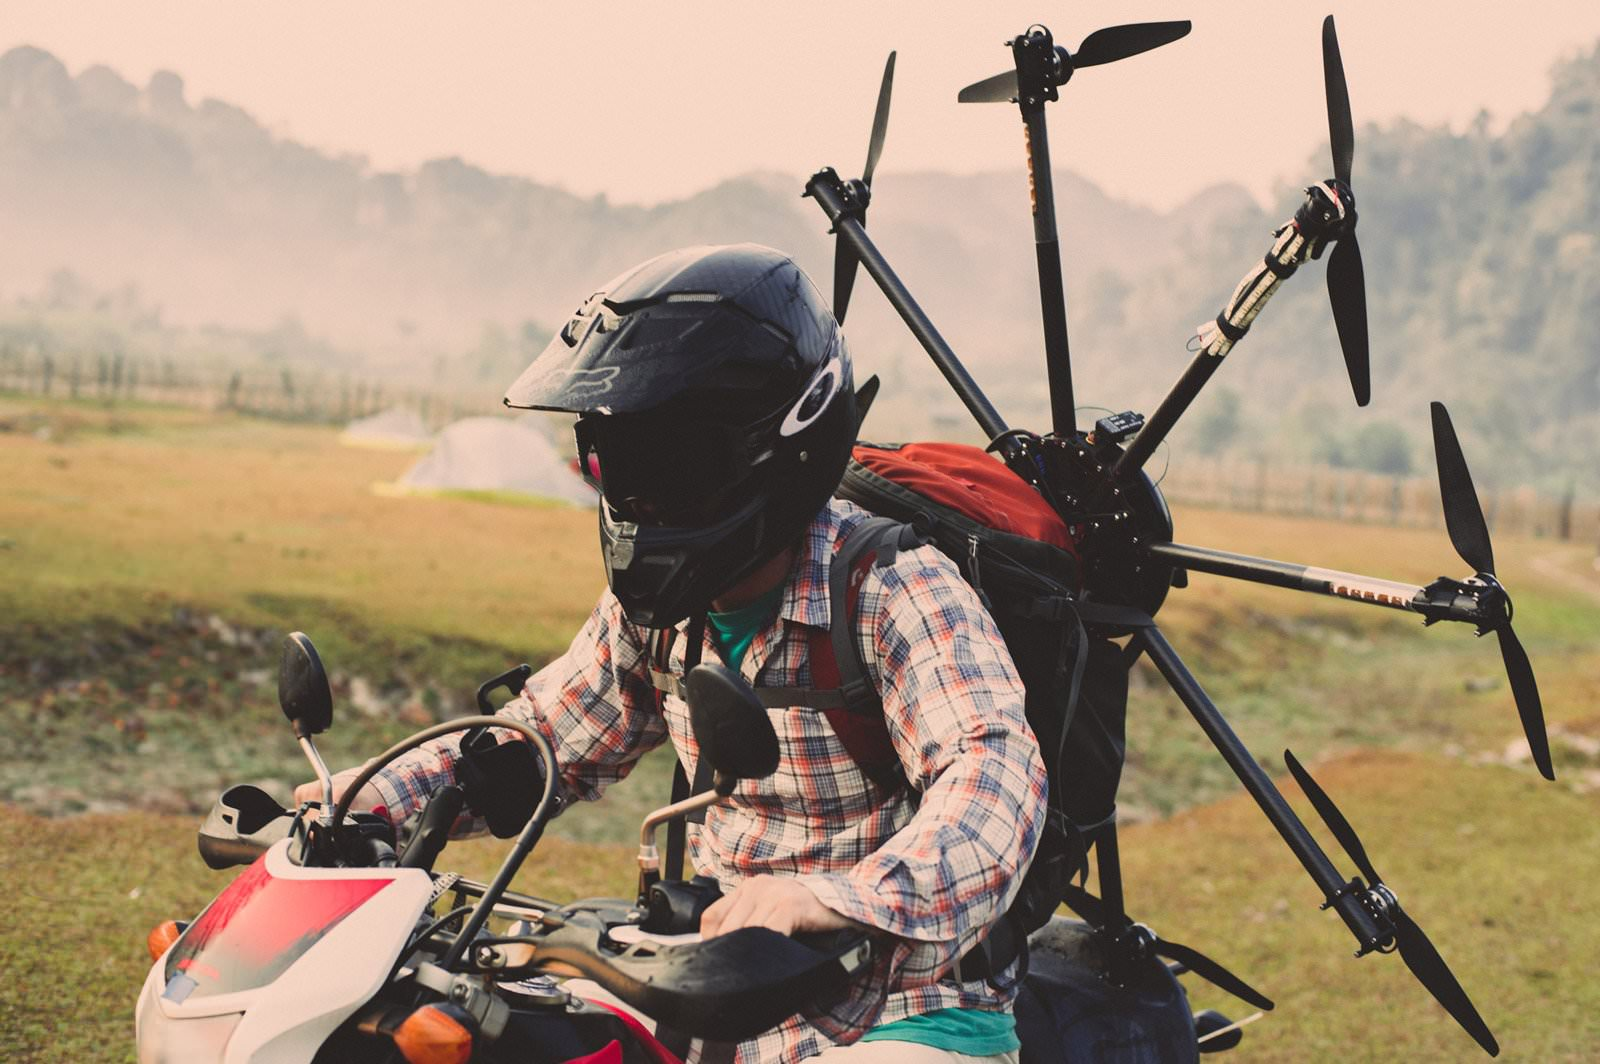 Drone pilot Nick Wolcott transports his drone via motorcycle.